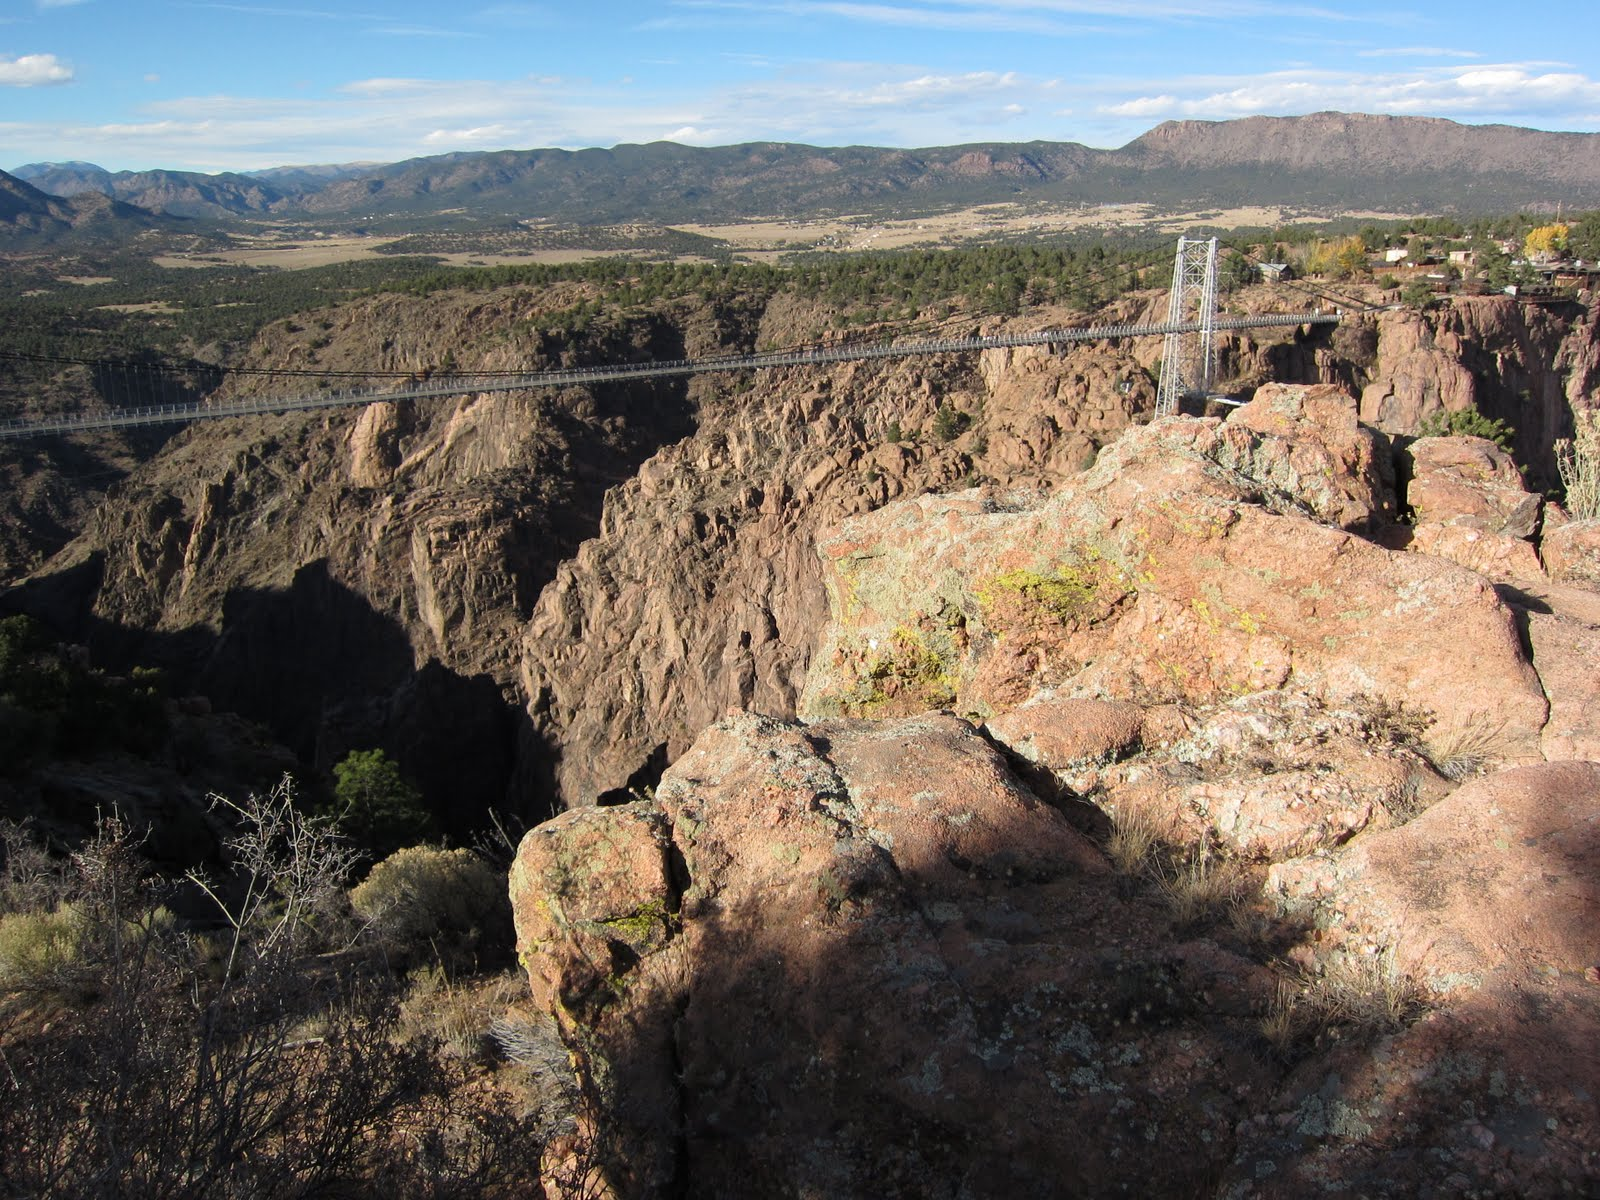 http://www.weirdlyodd.com/wp-content/uploads/2010/12/Royal-Gorge-Bridge-in-Colorado-US-11.jpg